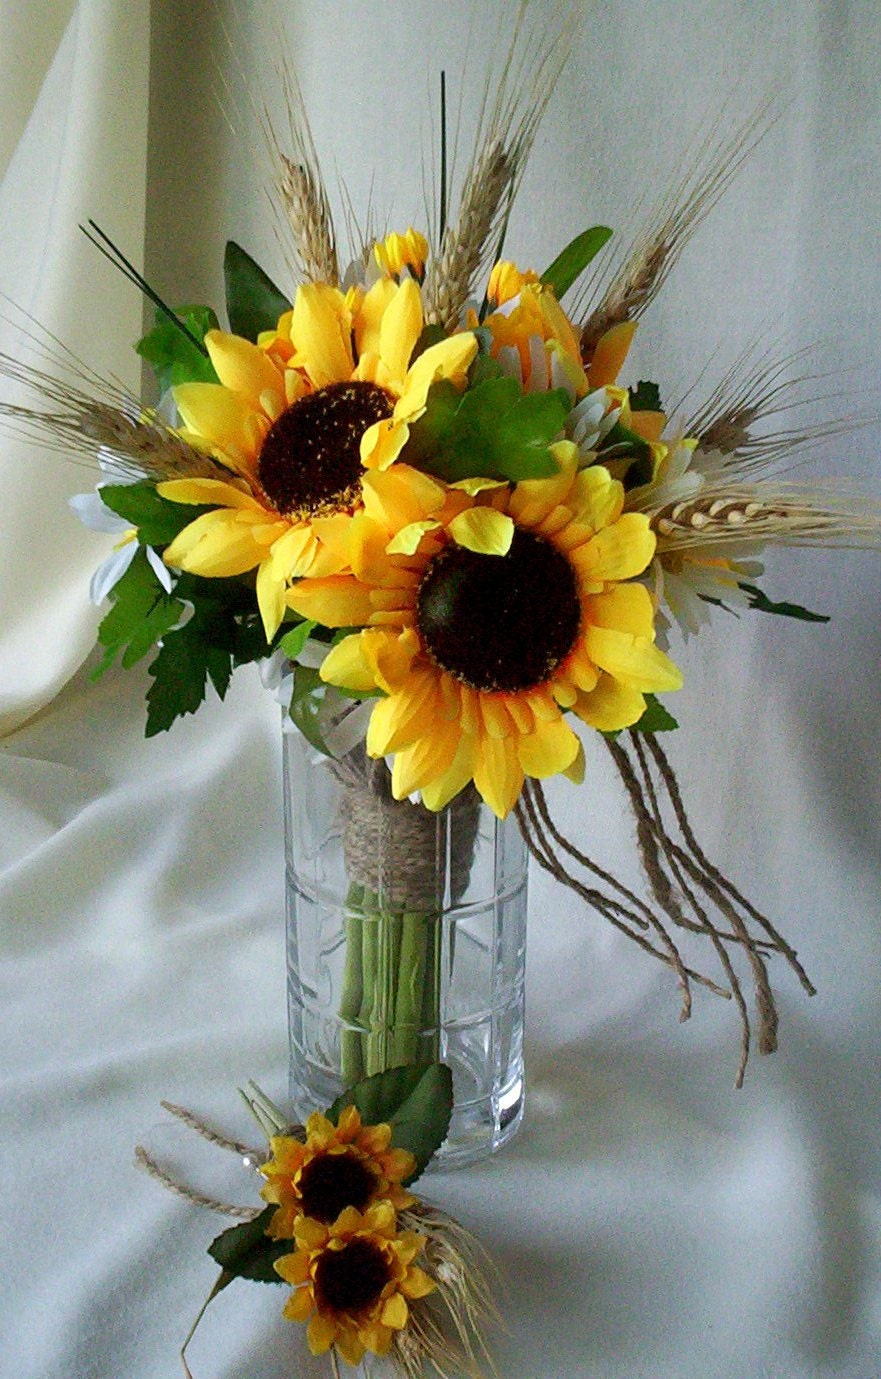 Bridesmaid Bouquets Sunflowers : Sunflower bridal bouquet country twine wrap daisies wheat